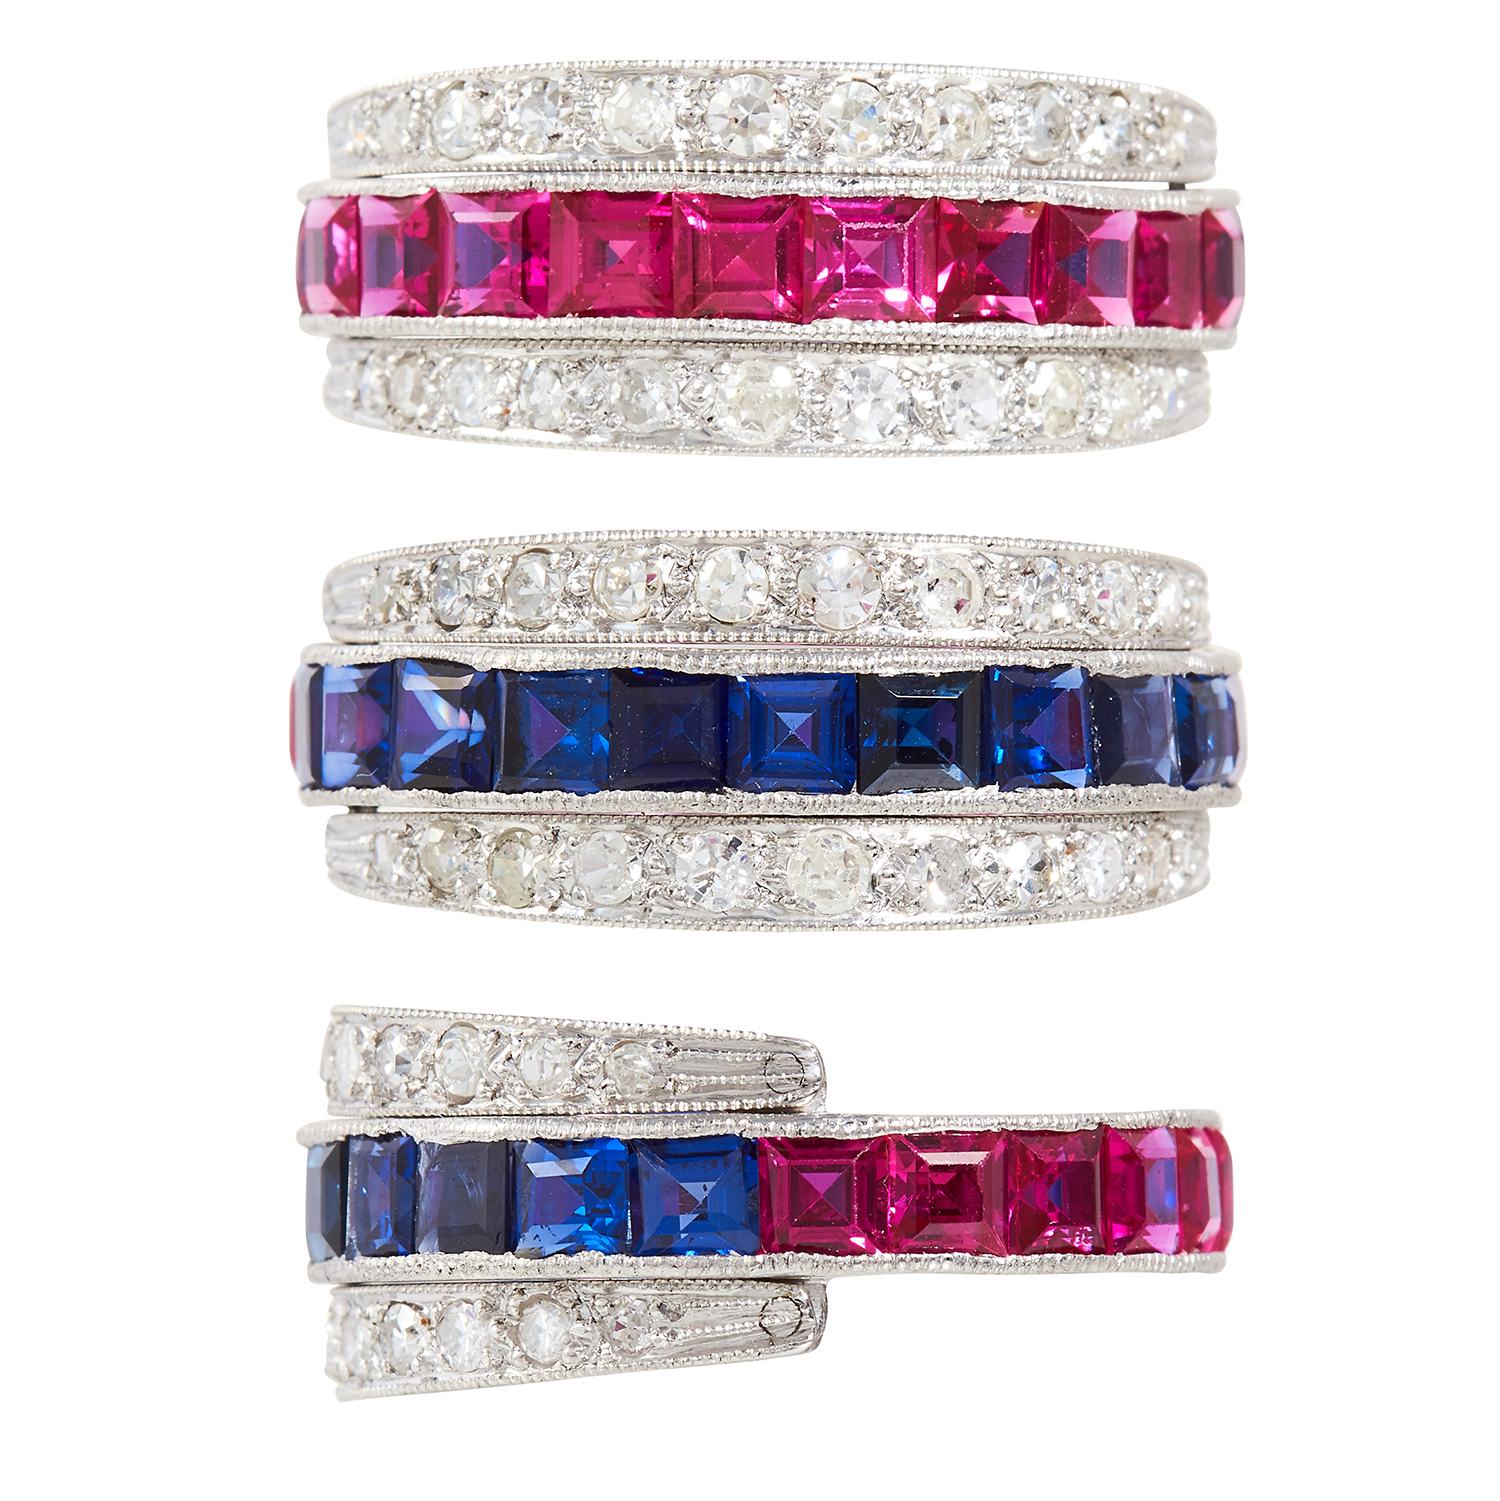 Los 30 - A SAPPHIRE, RUBY AND DIAMOND REVERSIBLE RING in platinum or white gold, the central band half set